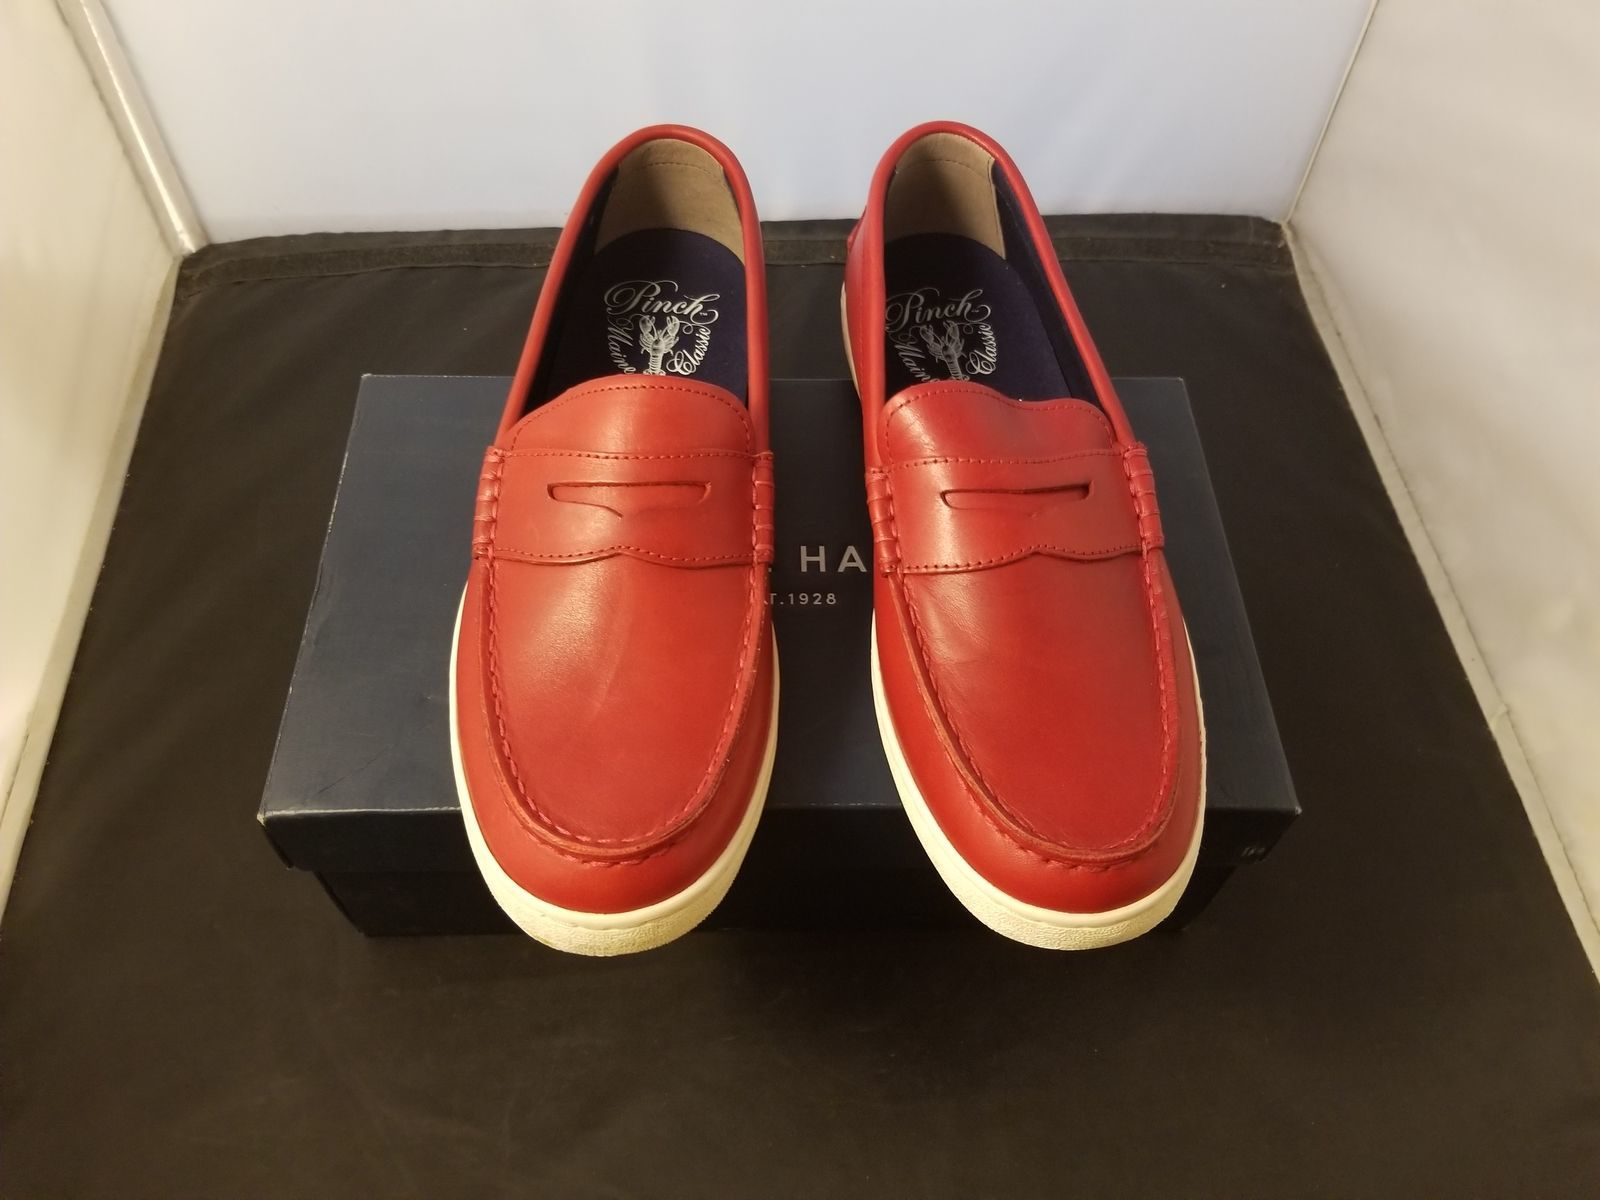 065c40d059e NIB Cole Haan Size 9.5 Medium Pinch Weekender Red Scooter Handsta Leather  Loafer